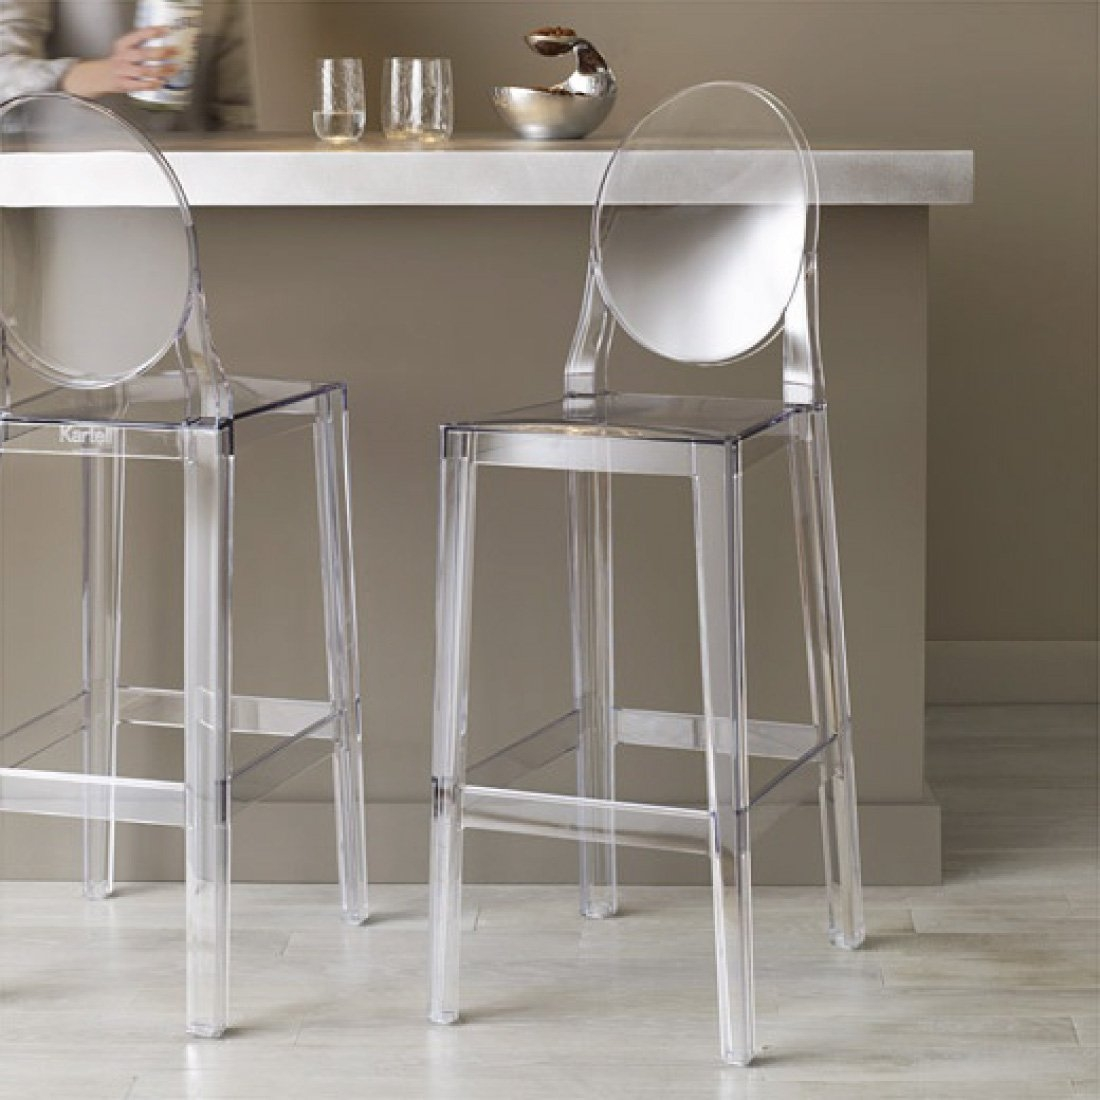 ghost bar chair eames replica india stools ideas on foter 2